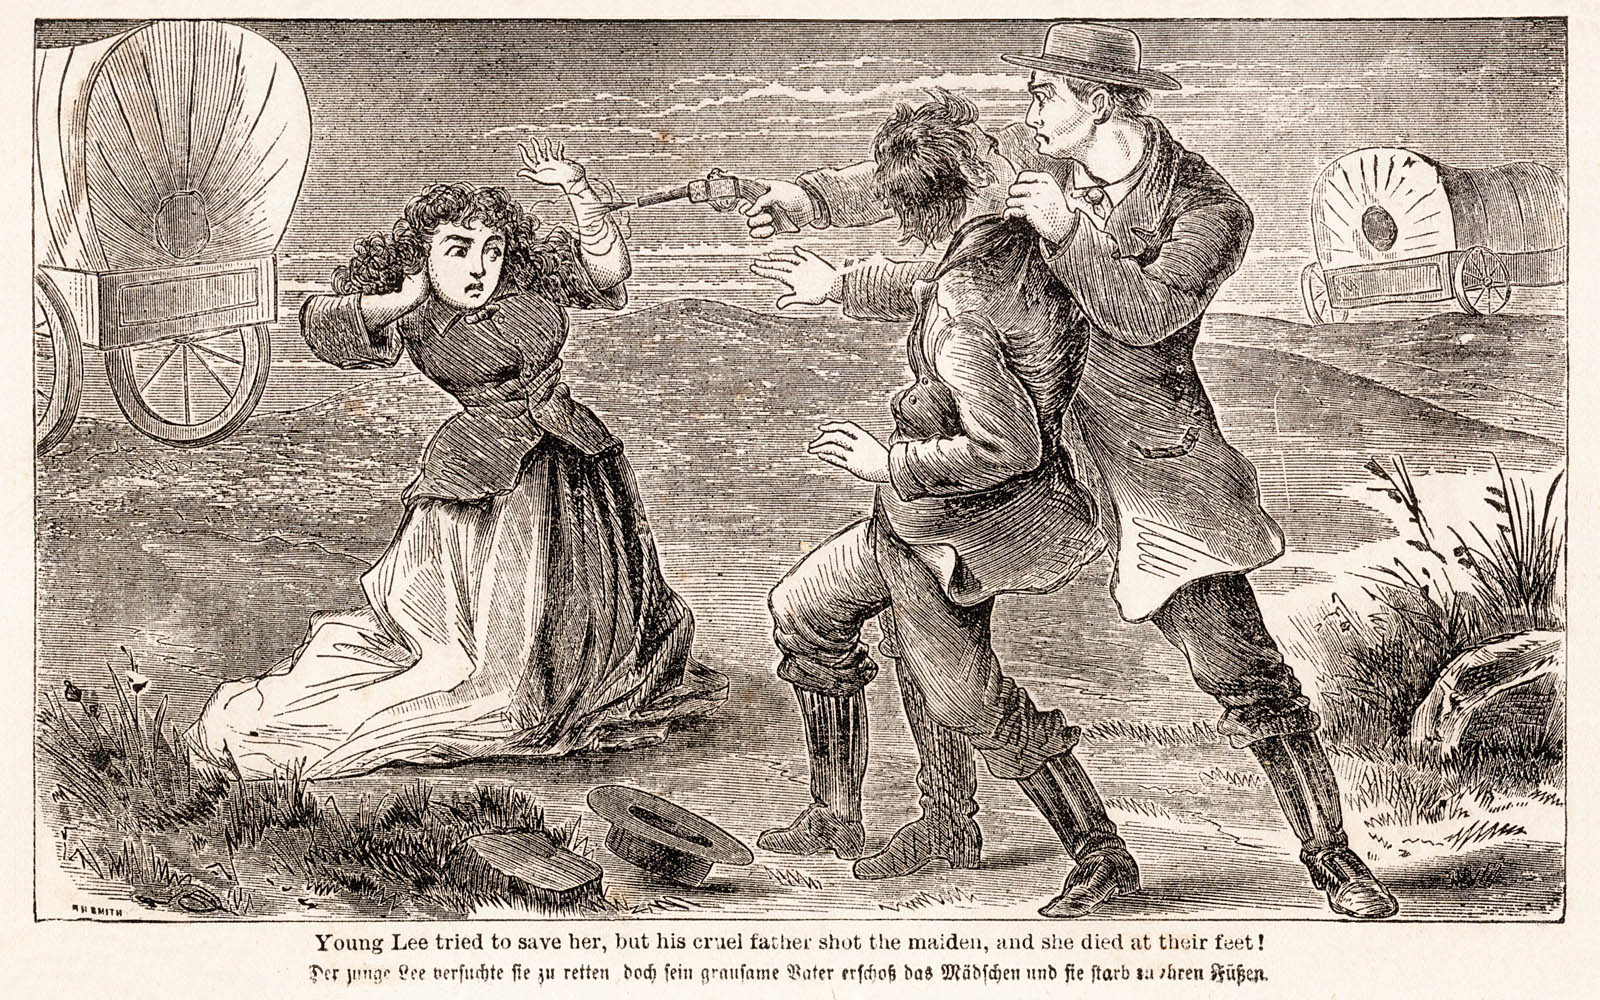 mountain meadows massacre The mountain meadows massacre of 1857 remains one of the most controversial events in the history of the american west, and it is called the darkest deed of the 19th century.